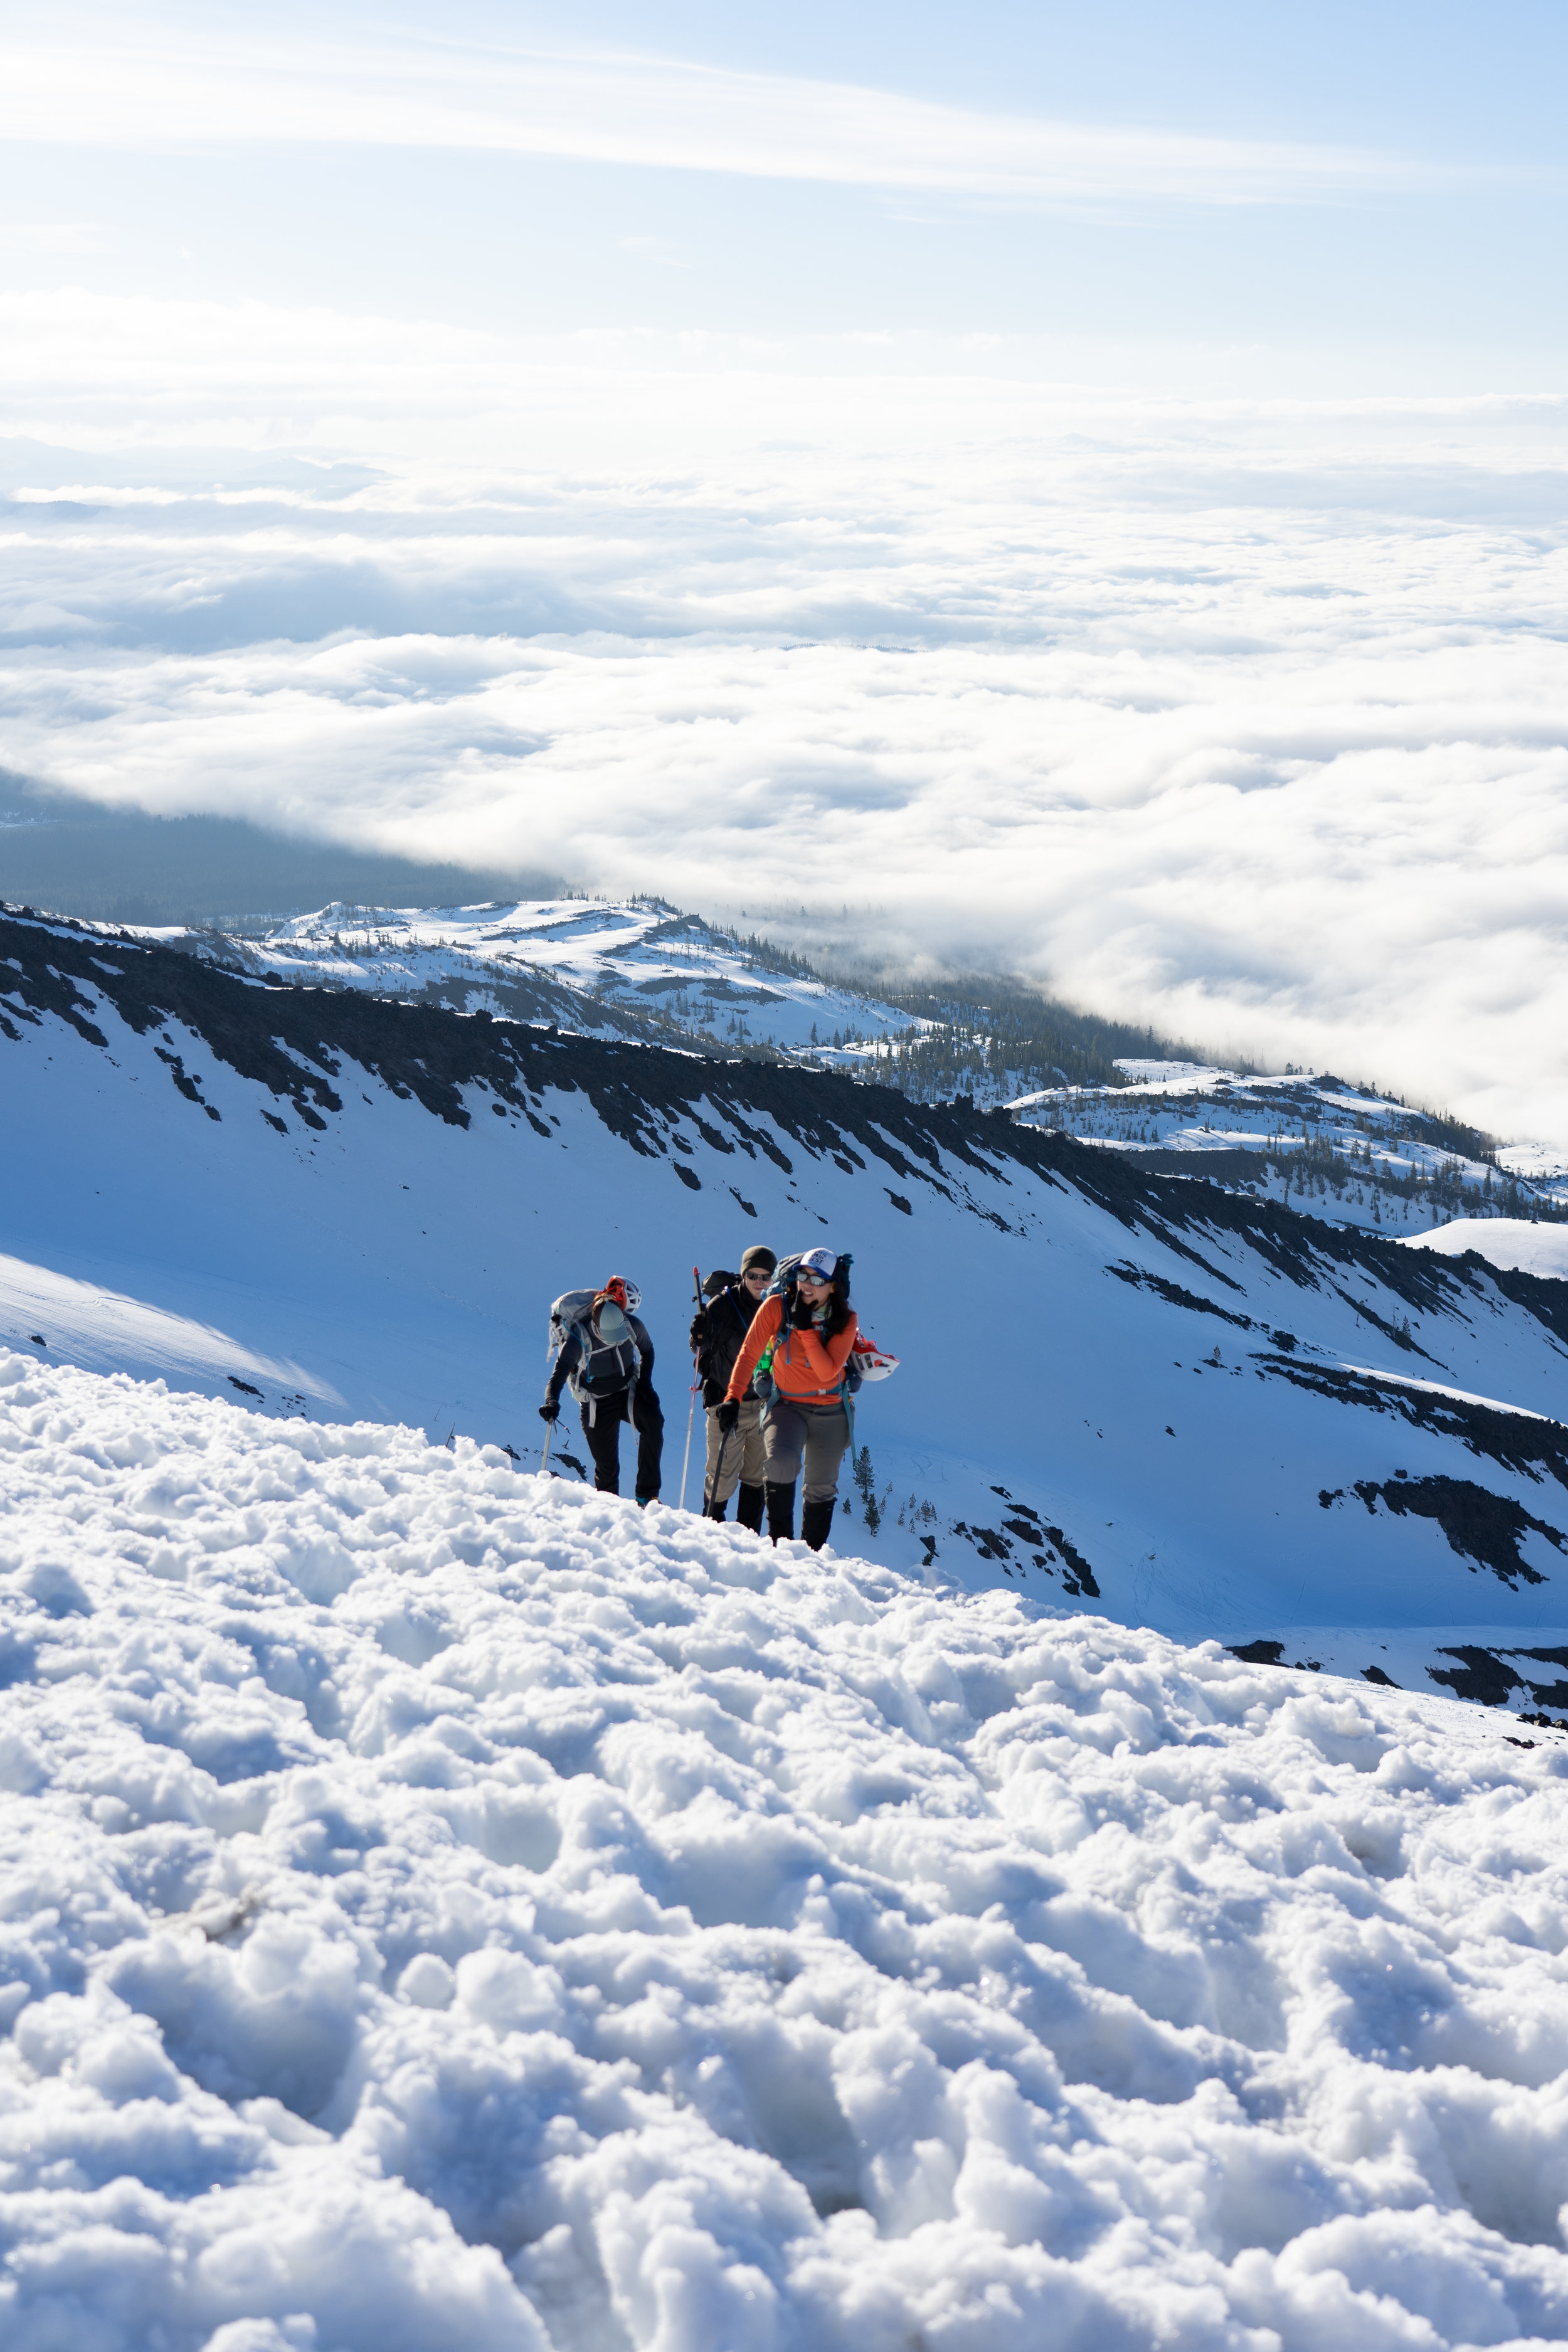 My group making their way up Mount Saint Helens after sunrise.